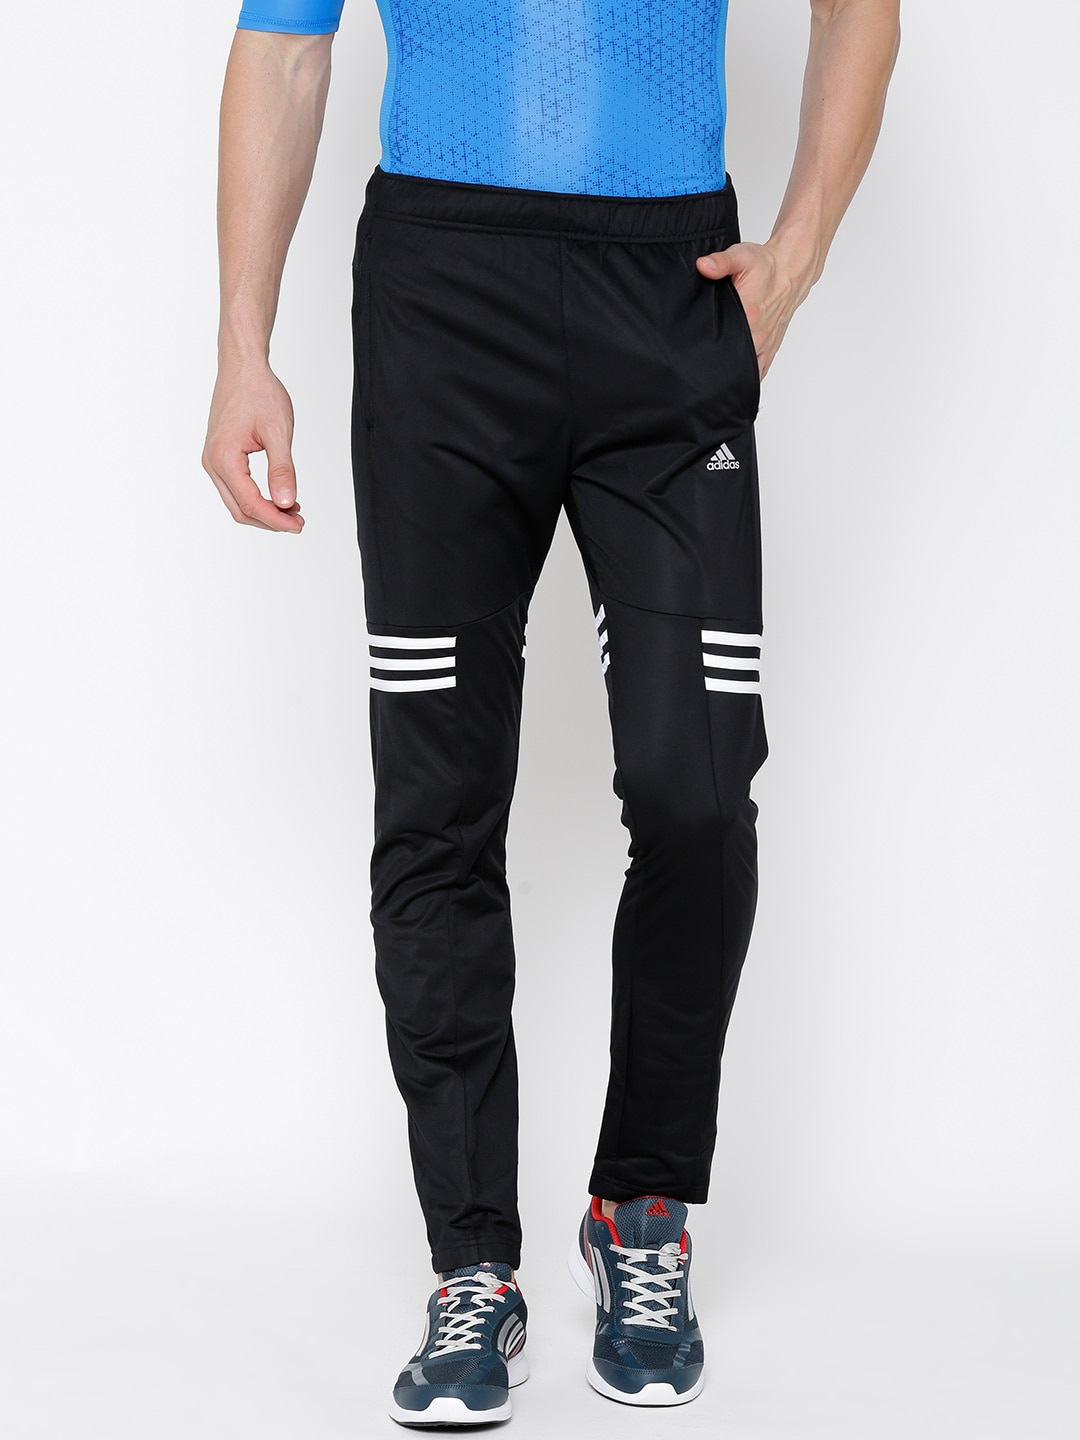 Shop for mens track pants online at Target. Free shipping on purchases over $35 and save 5% every day with your Target REDcard.